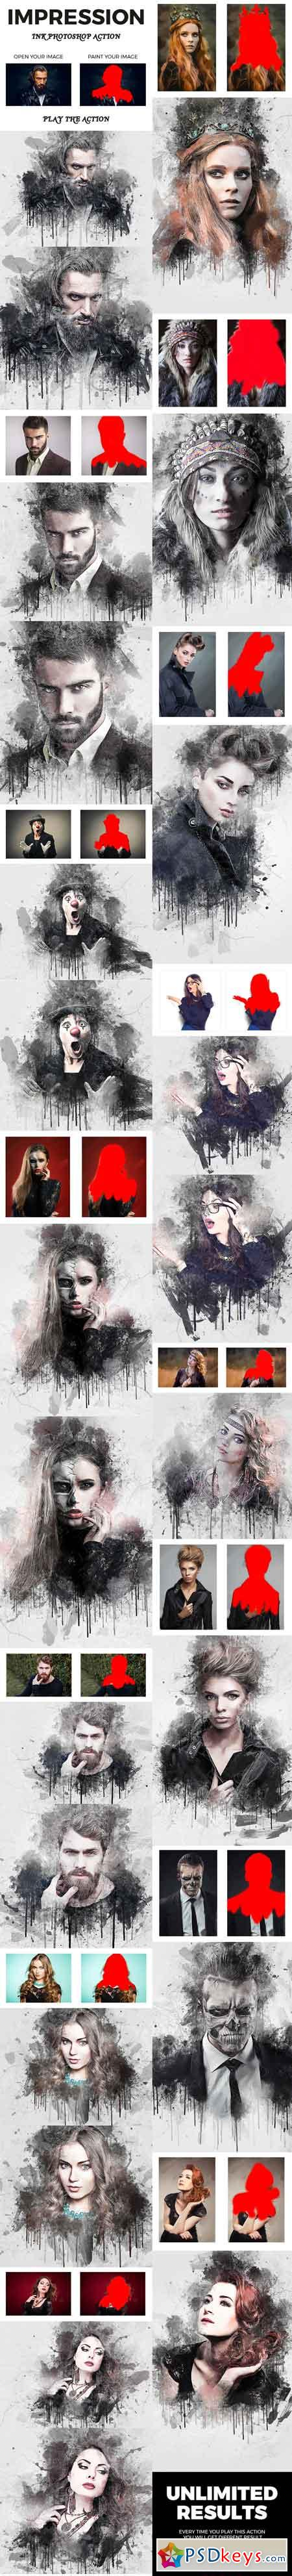 Impression Ink Photoshop Action 21285770